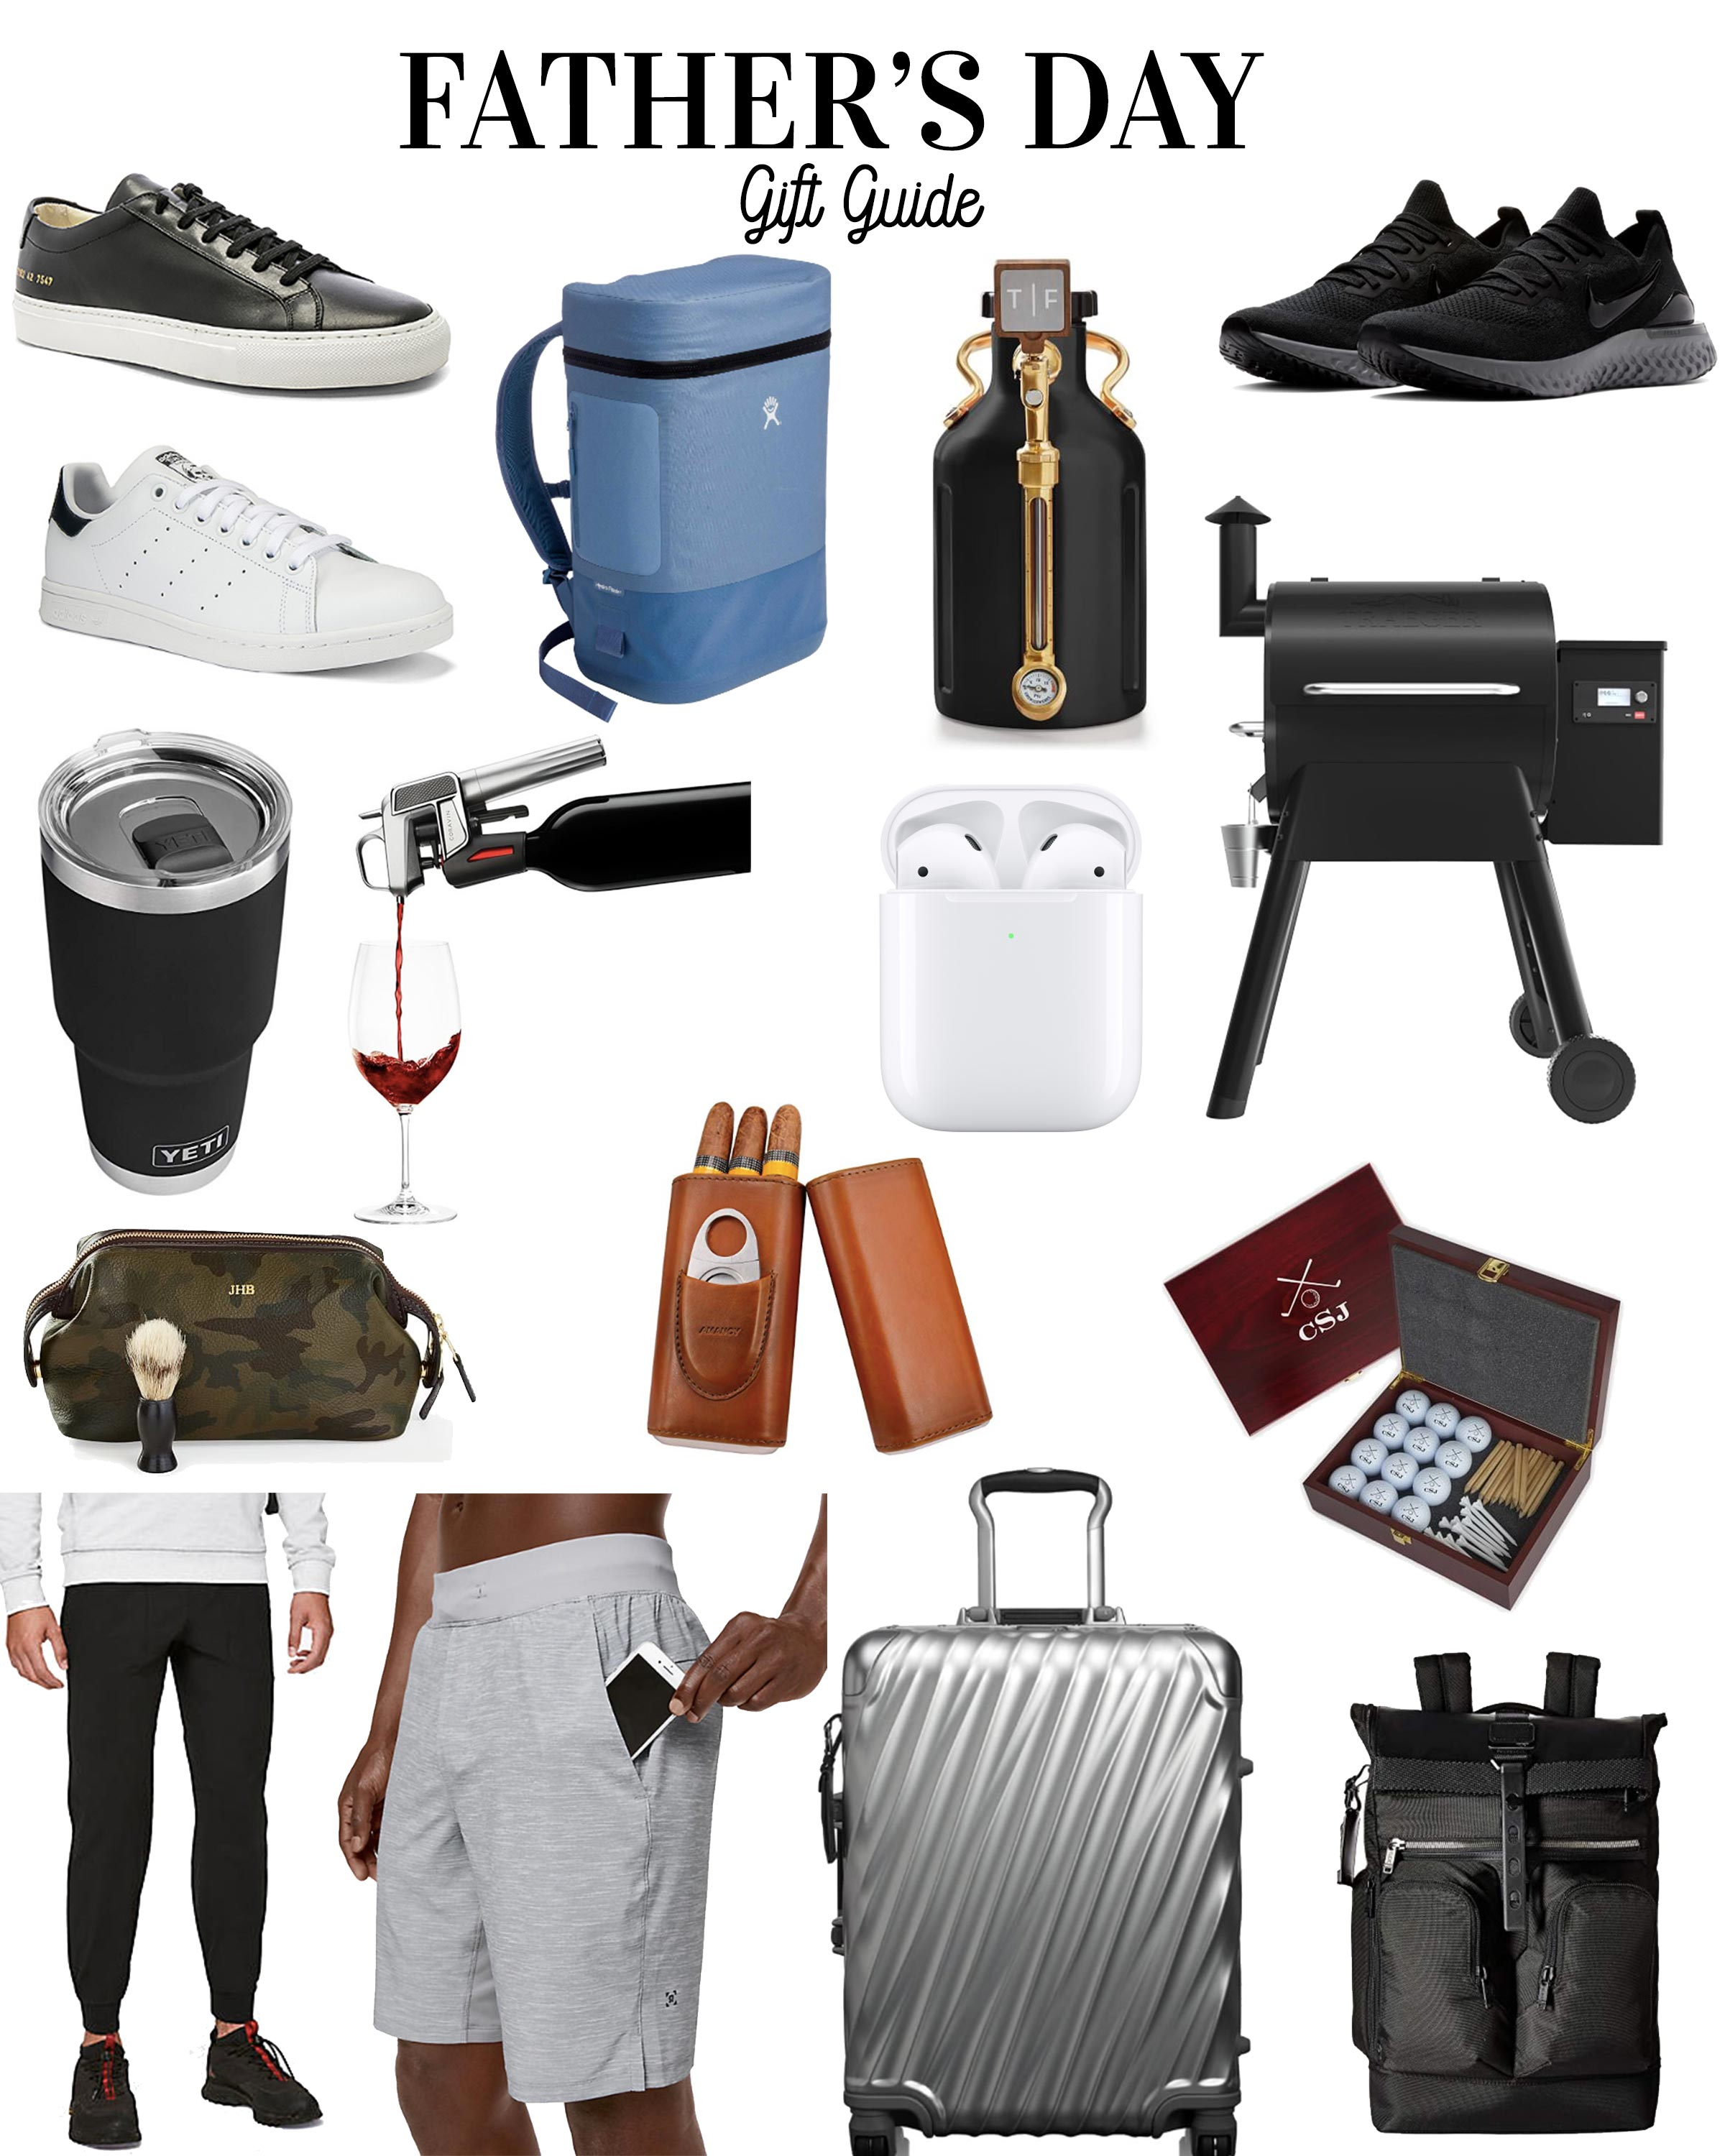 FATHER'S DAY GIFT GUIDE 2019.  GREAT GIFTS FOR DADS AND GRANDADS.